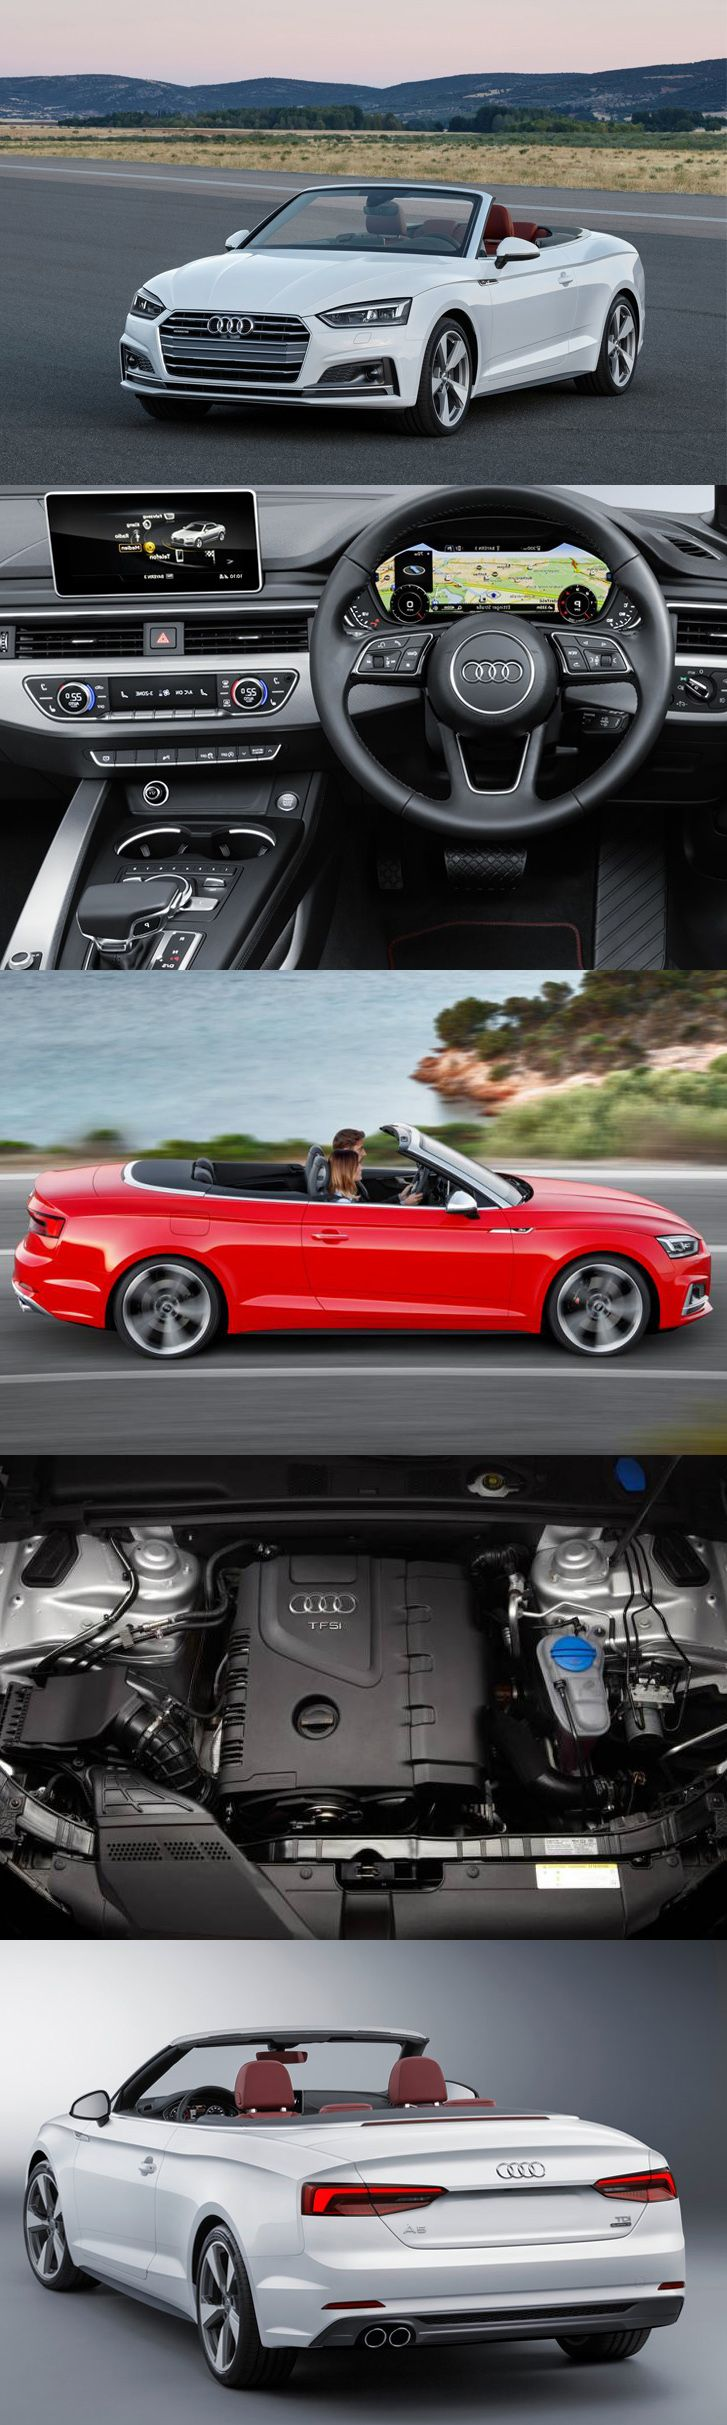 #Audi #A5Cabrio 2017 With Improved Specs and Engines Read full blog: www.enginecompare.co.uk/blog/audi-a5-cabrio-2017-improved-specs-engines/